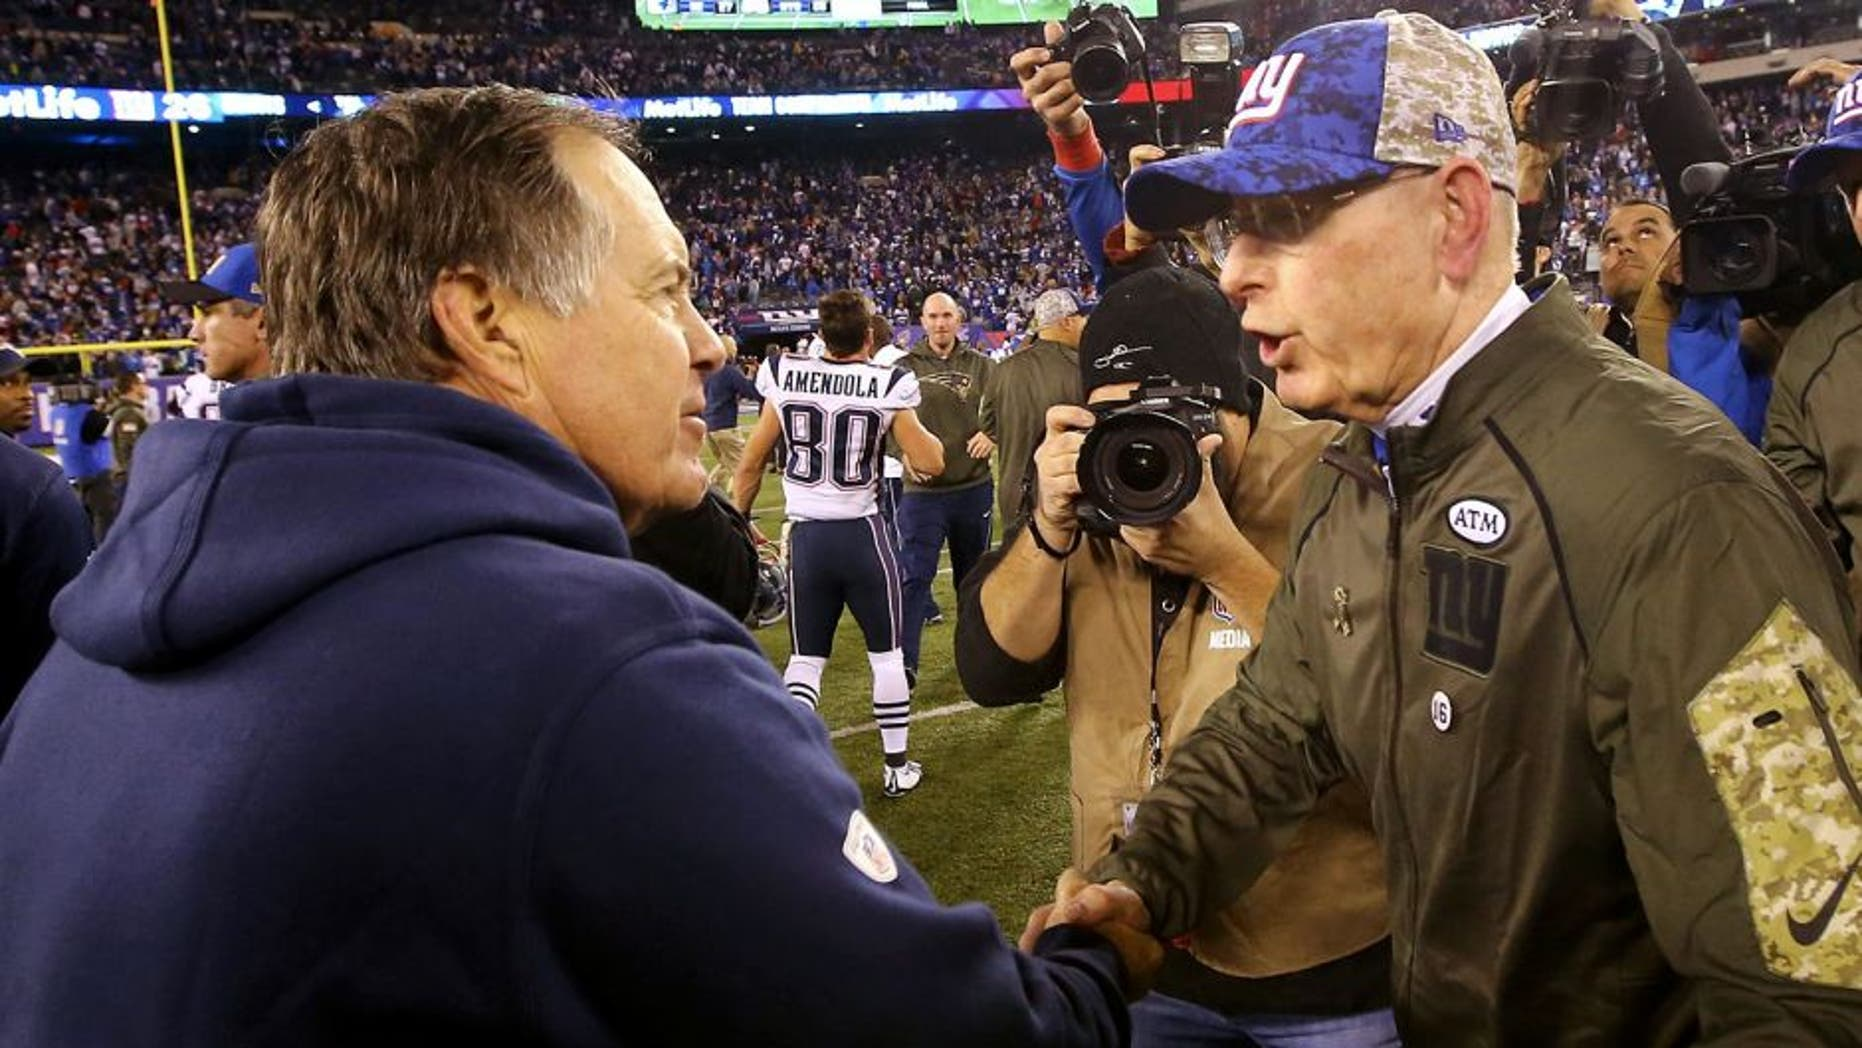 EAST RUTHERFORD, NJ - NOVEMBER 15: Head Coach Tom Coughlin of the New York Giants meets head coach Bill Belichick of the New England Patriots after the Patriots 27-26 win at MetLife Stadium on November 15, 2015 in East Rutherford, New Jersey. (Photo by Al Bello/Getty Images)